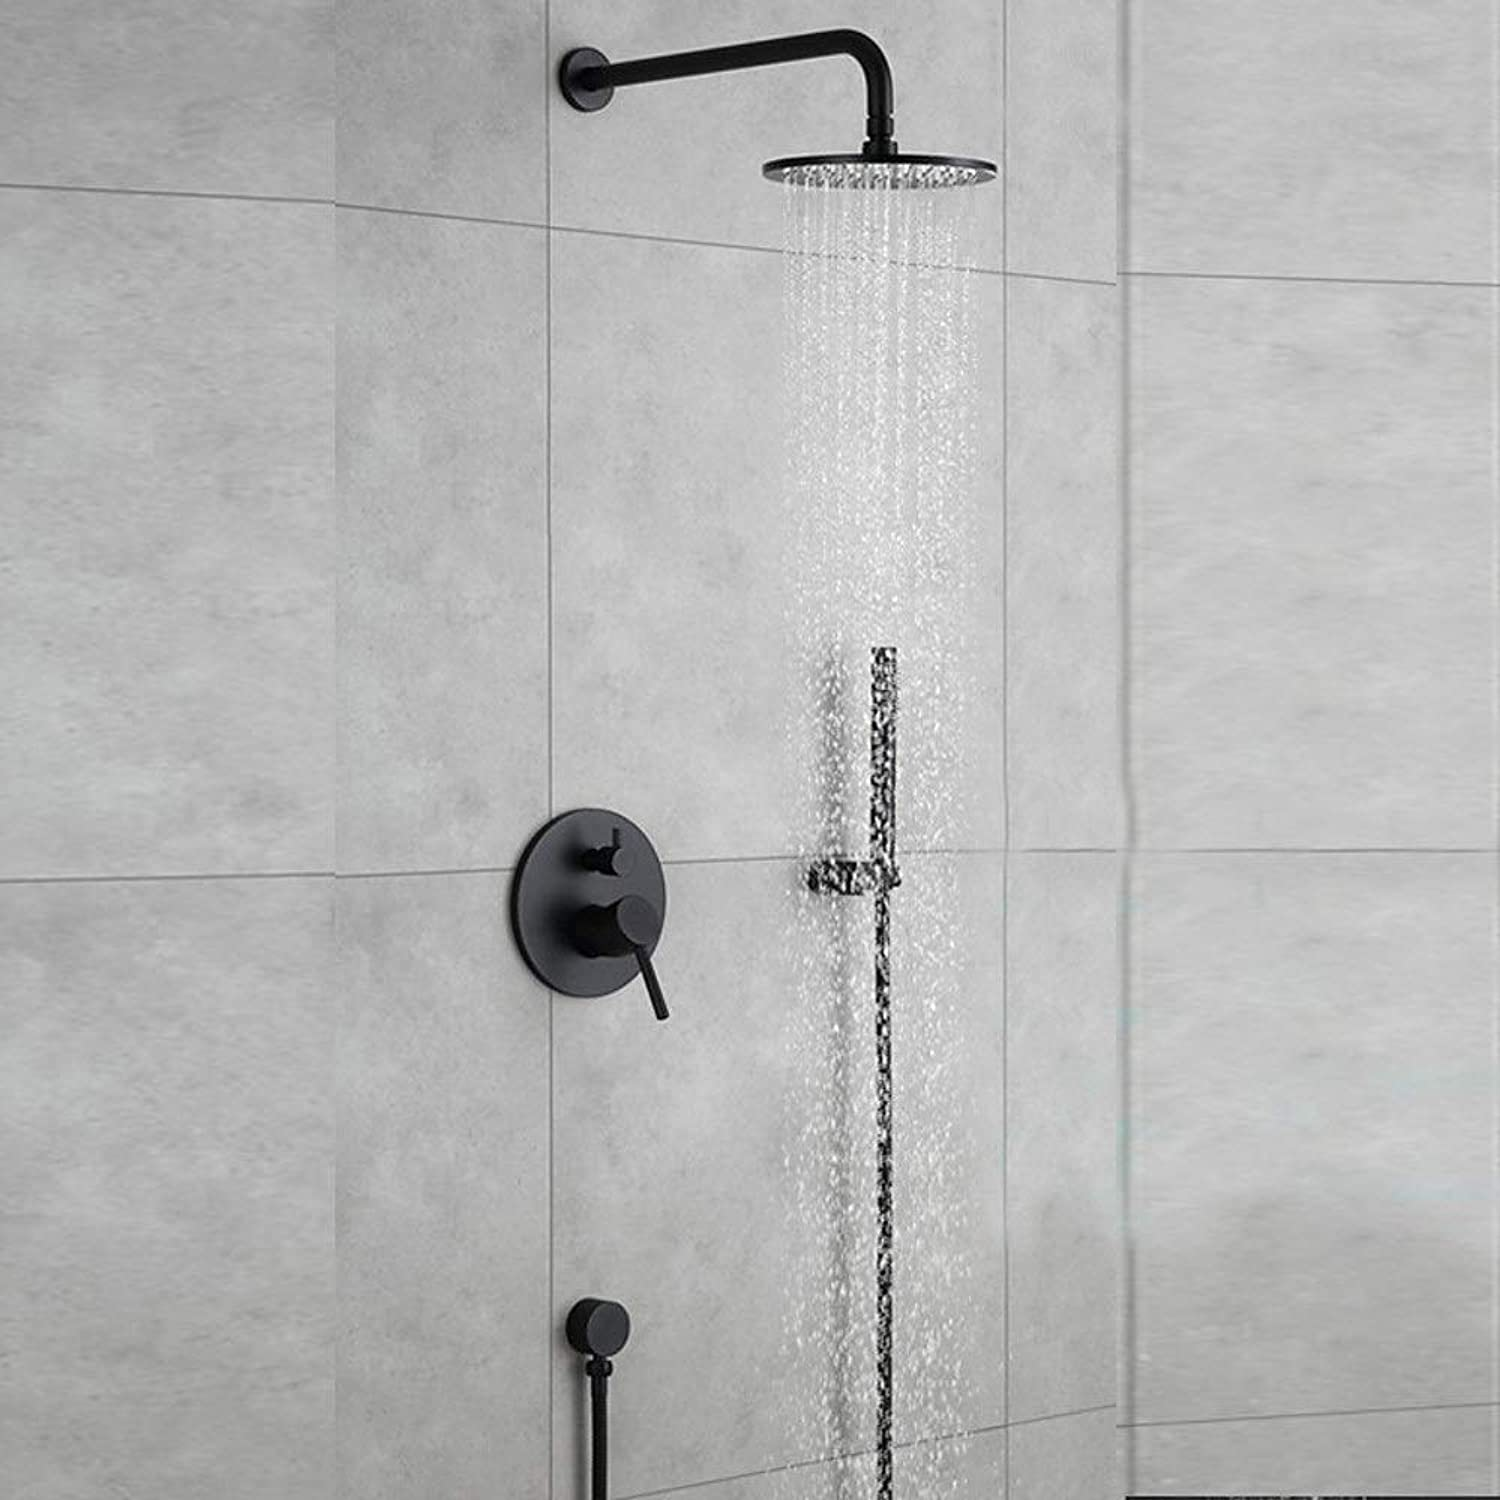 MQW In-wall Black Shower Set Hotel Concealed Wall-mounted Round Double Function Shower Faucet Shower System Beautiful and practical